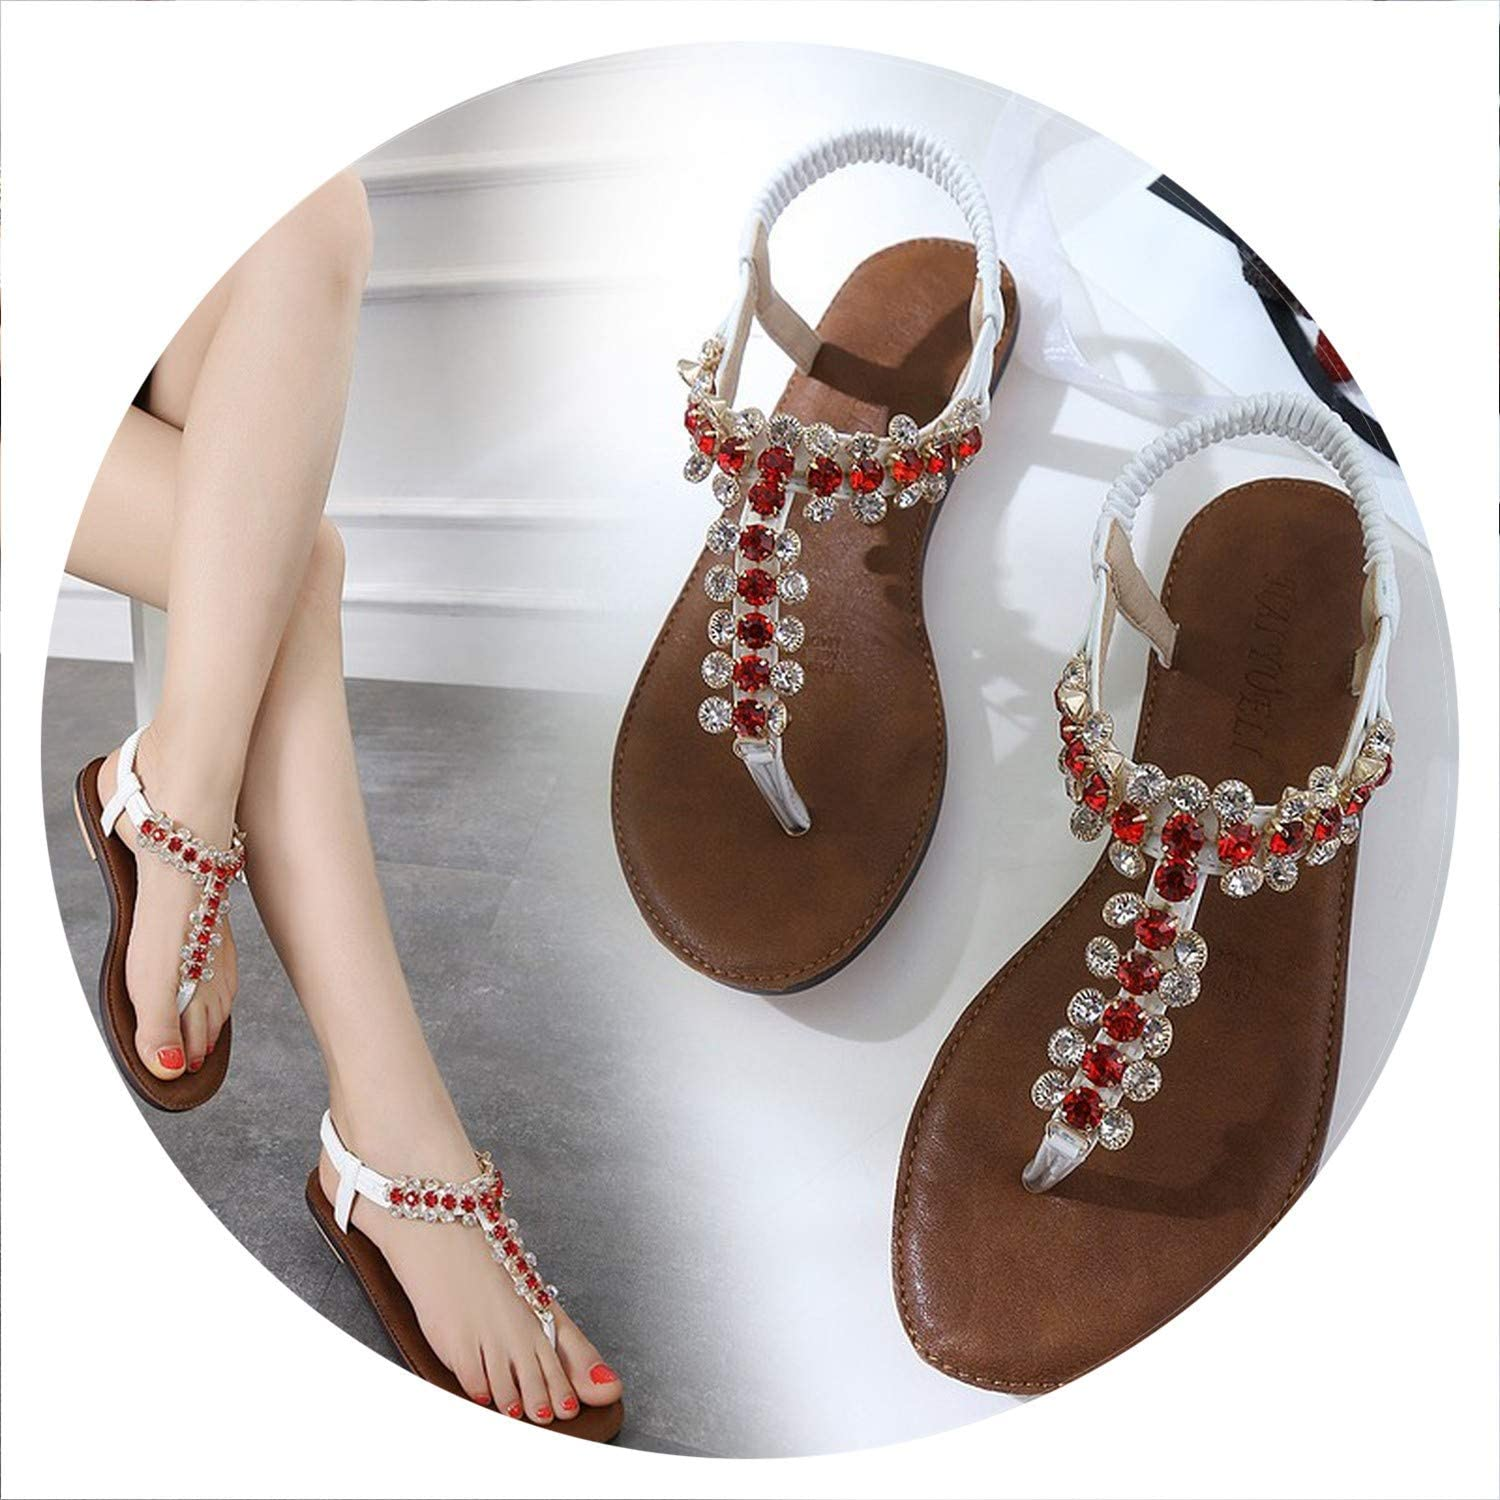 colorful-space New Summer Women Flat Gladiator Sandals shoes Woman Flip Flop shoes Ladies Fashion Crystal Female Casual Sandals shoes